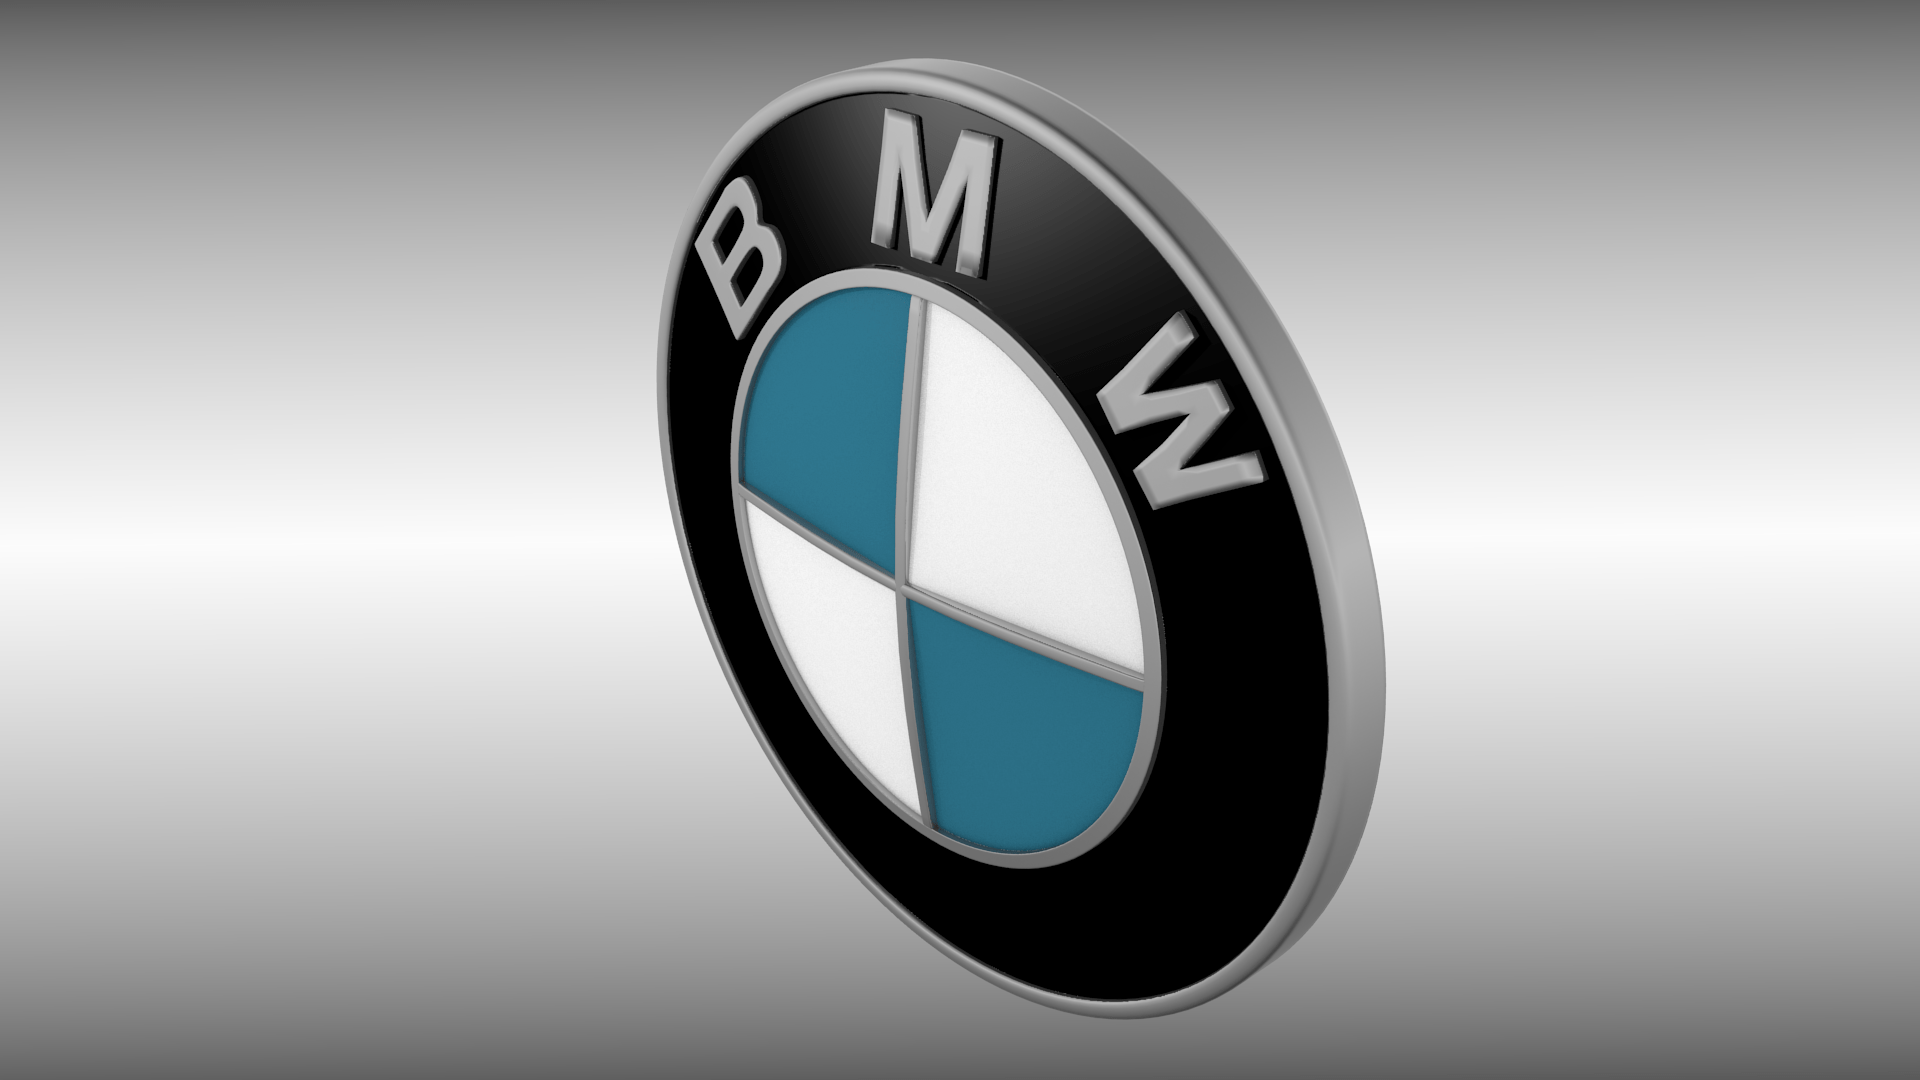 Free Animated Wallpaper Software Bmw Logos Download